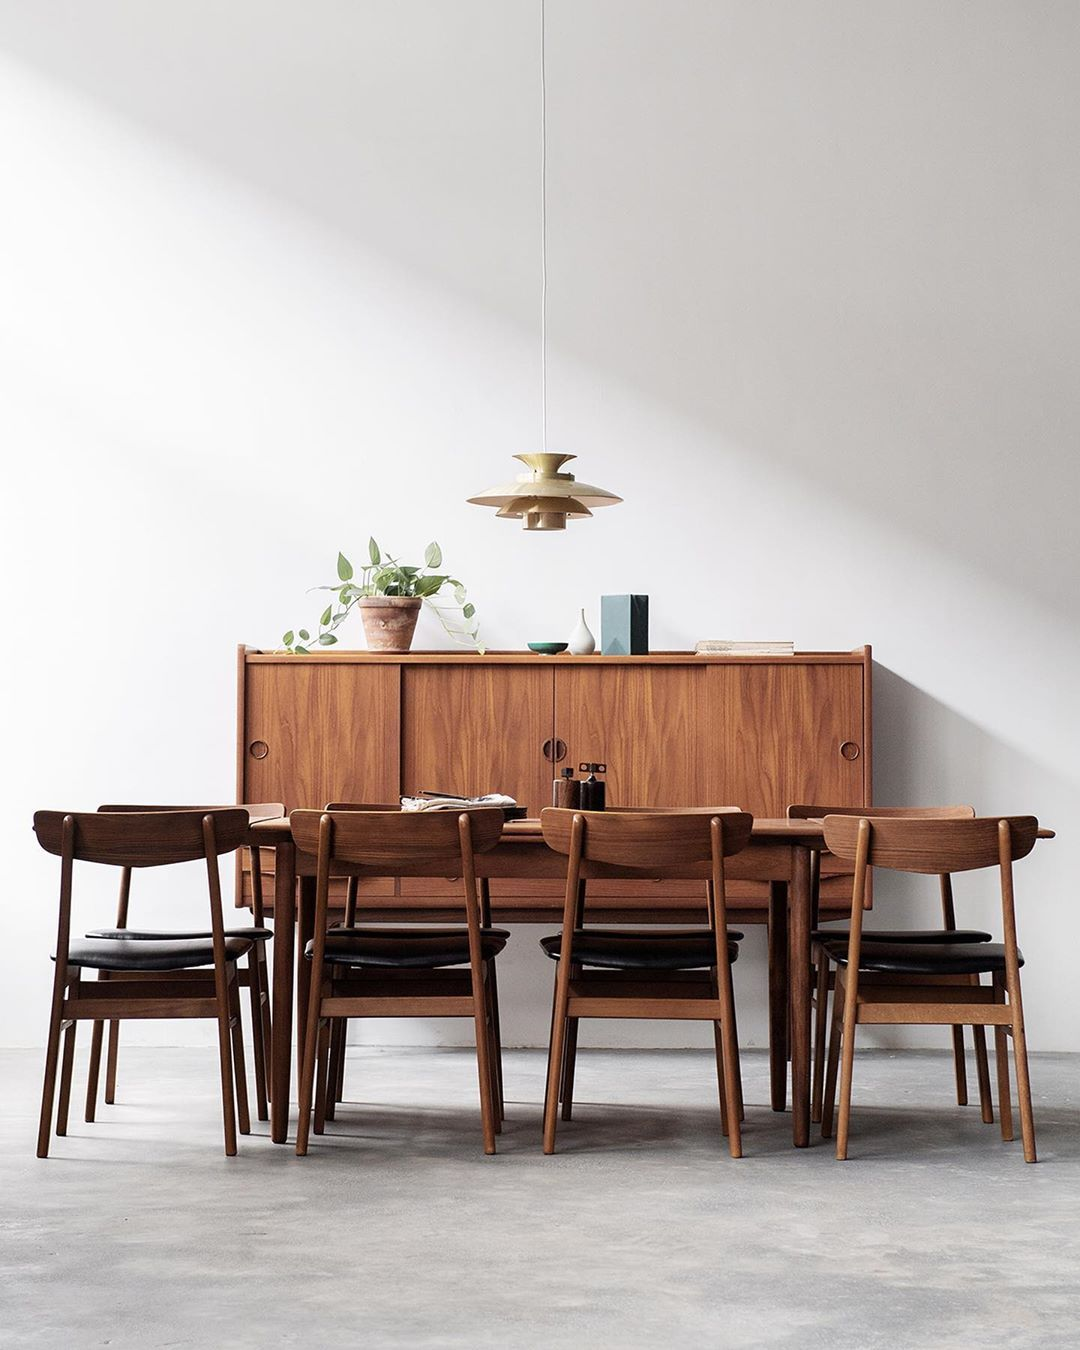 Recently Delivered This Fully Restored Vintage Danish Dining Table In Teak To Her New Ho Danish Dining Rooms Danish Modern Dining Chair Teak Living Room Chairs